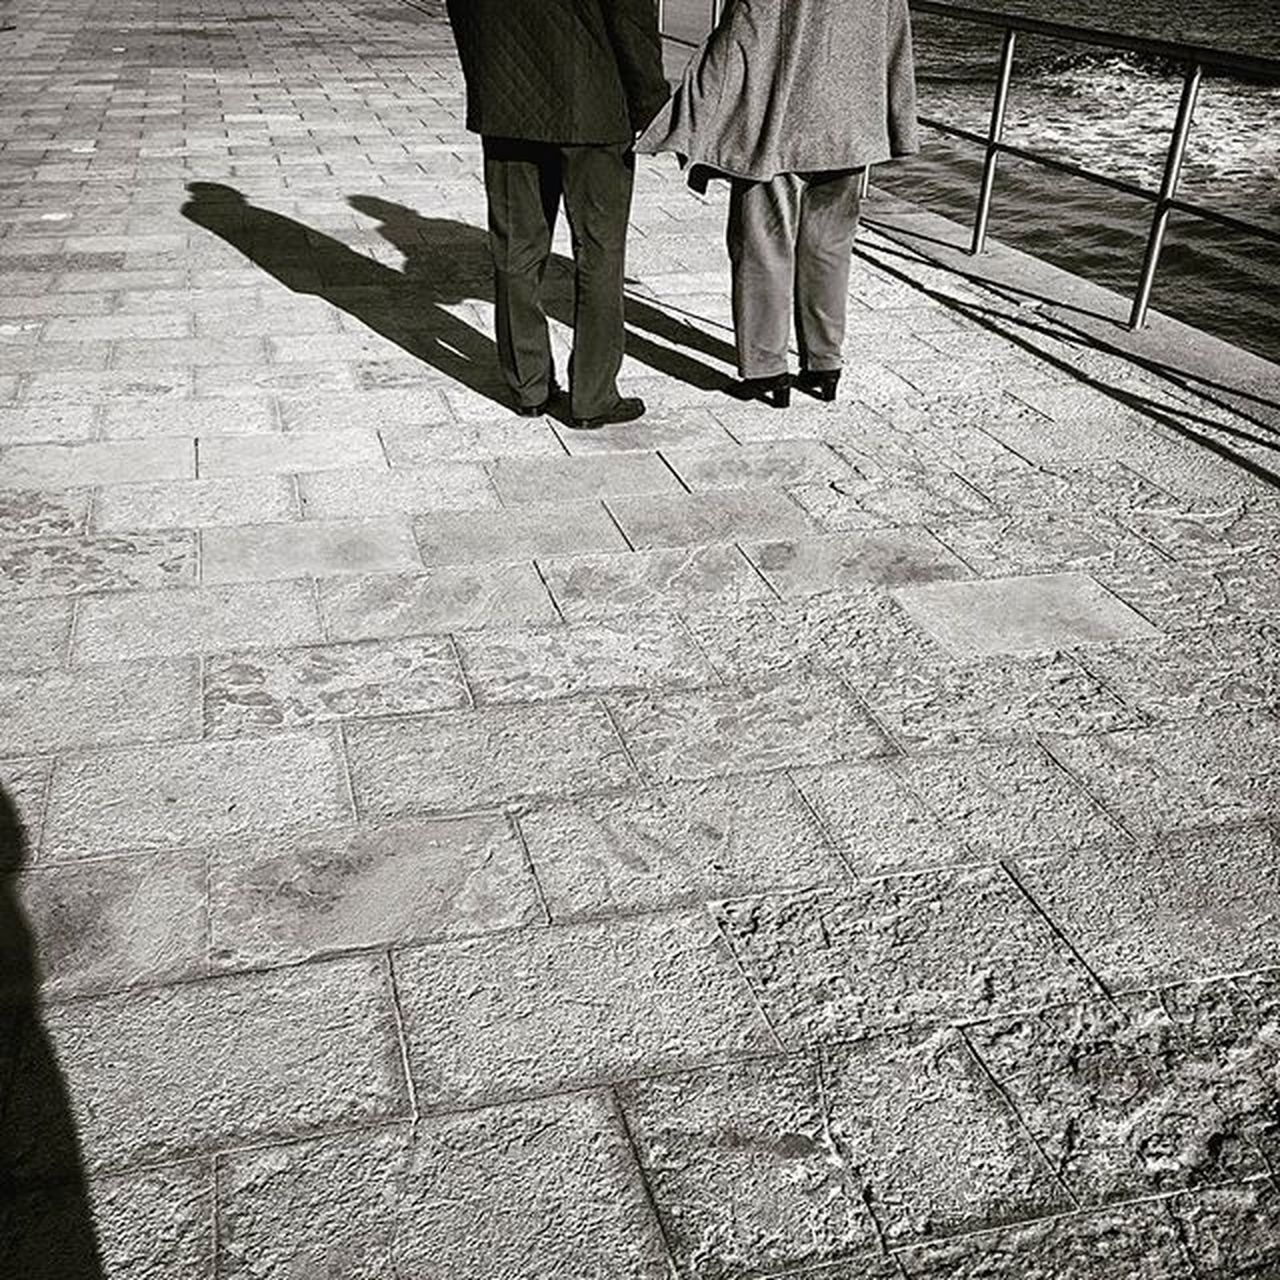 Coupleoftheshadow Shadows Couple Oldlove Walkinginthesun Enjoylife Liveit Igers VSCO Vscolife Streetphotography Photographylovers Photography Blackandwhite Blancnoir Shootingtheglobe Shooters_pt Cascaislovers Cascais Sunnydays Sun Laliphotography Travelling